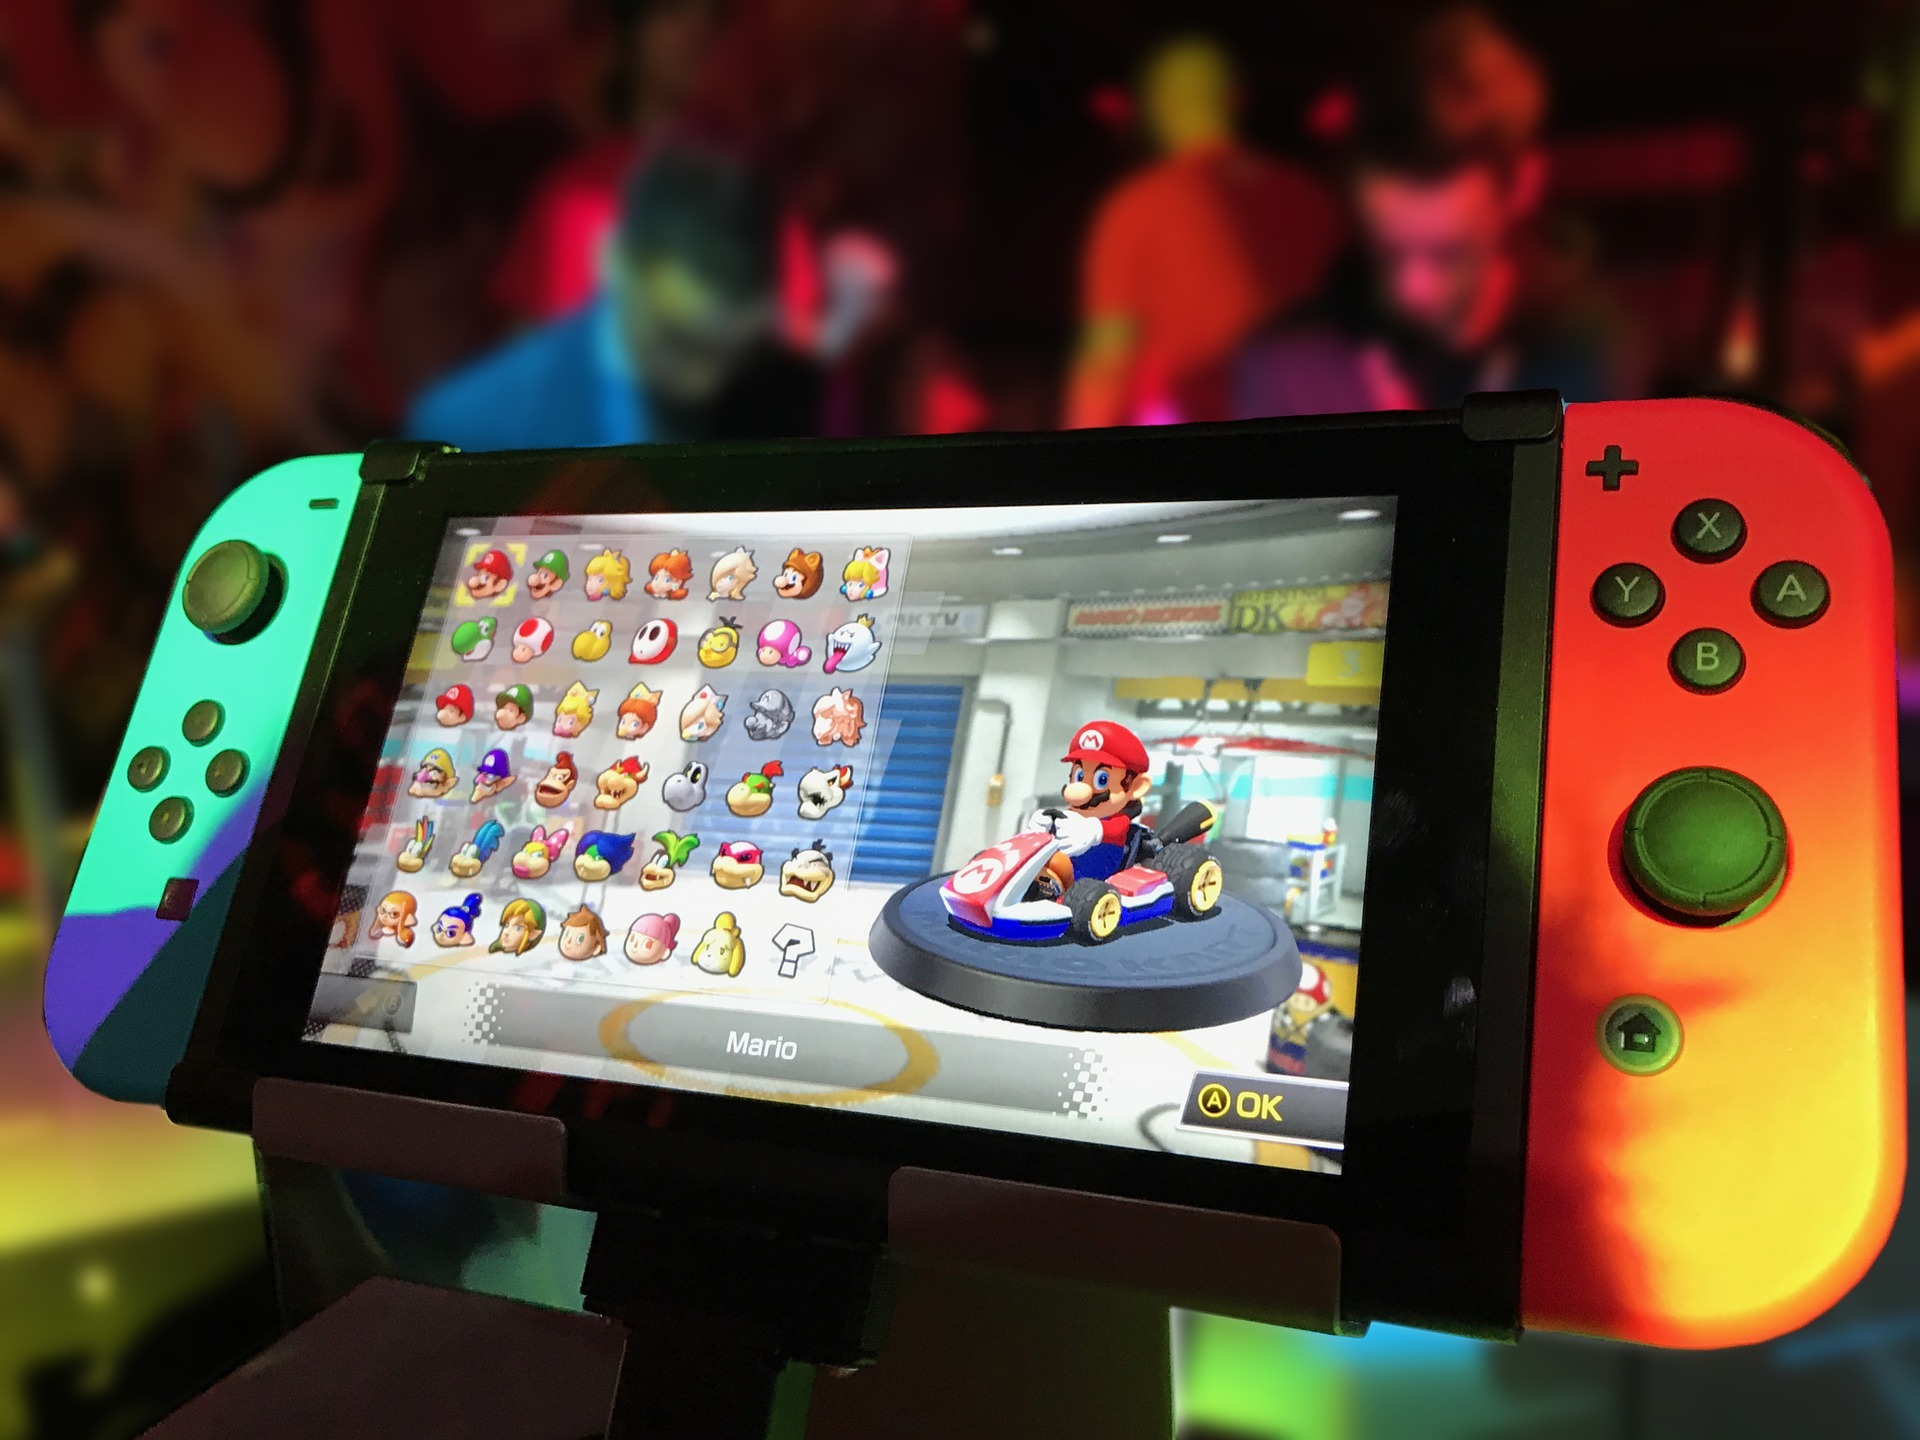 Upcoming Nintendo Switch Games for 2018